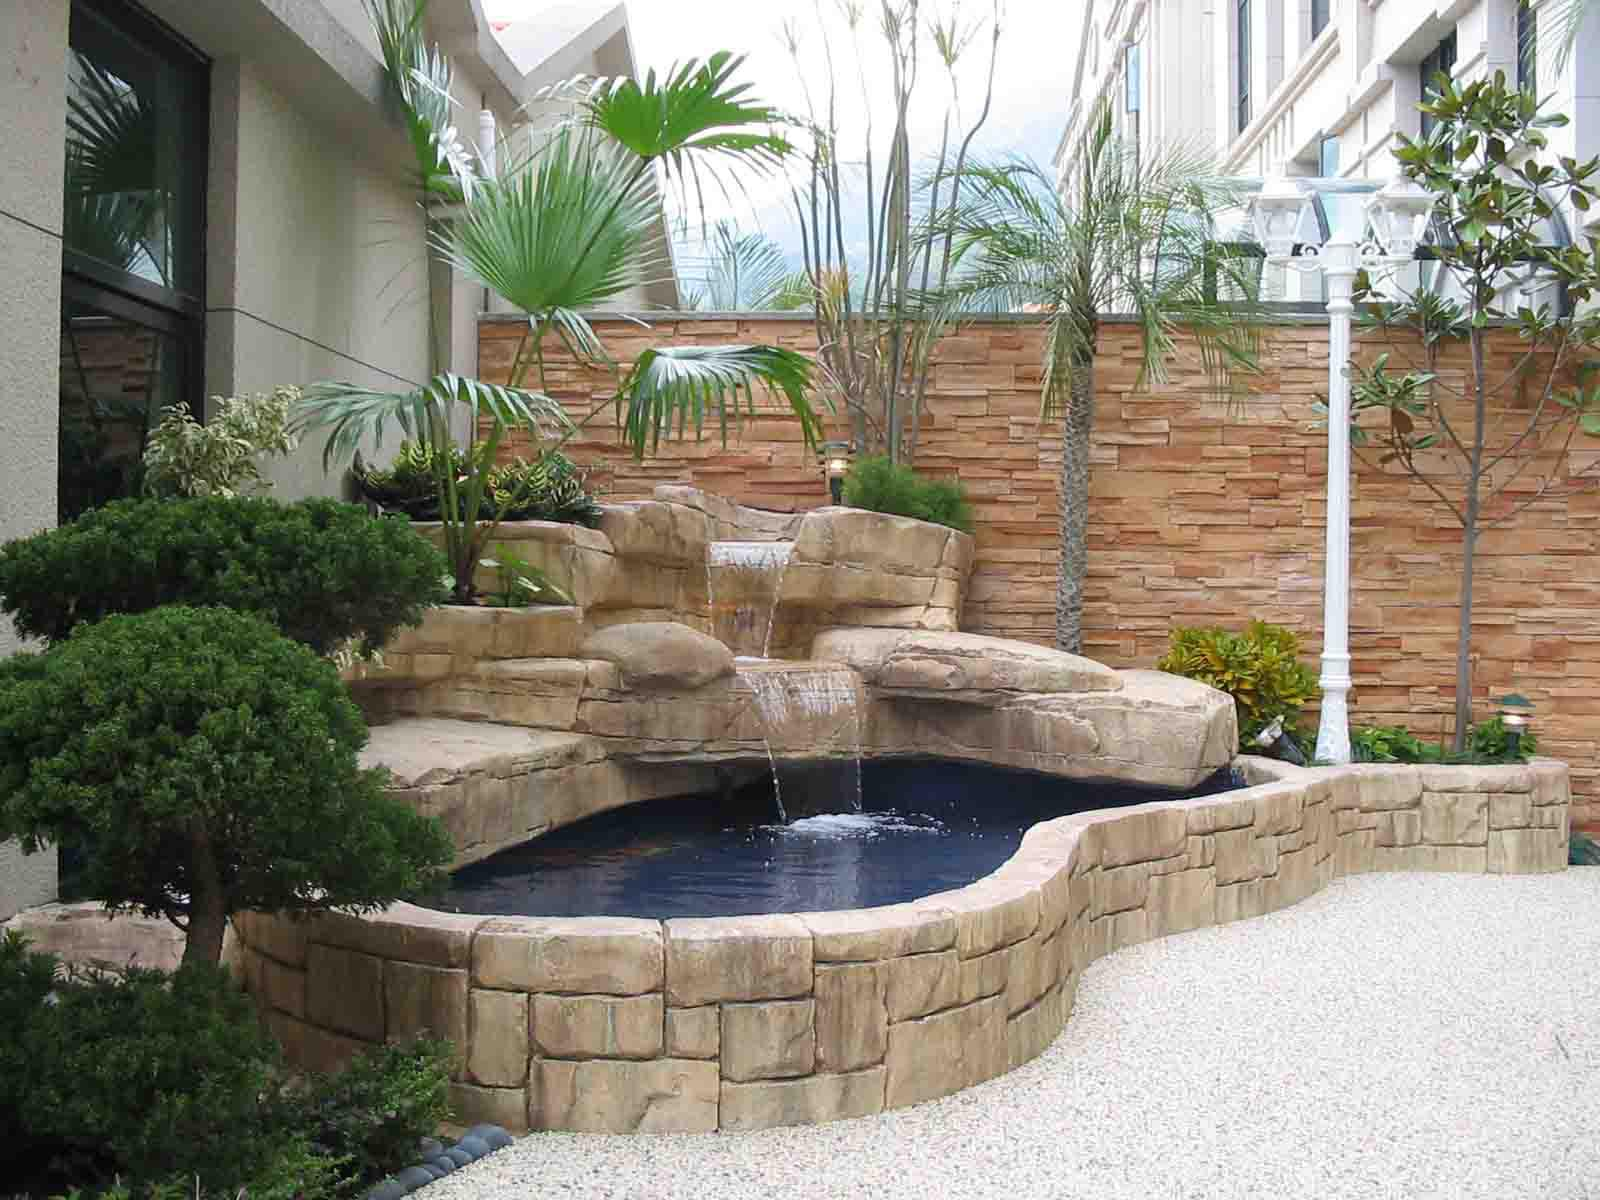 Fish pond garden design backyard design ideas for Small garden fish pond designs